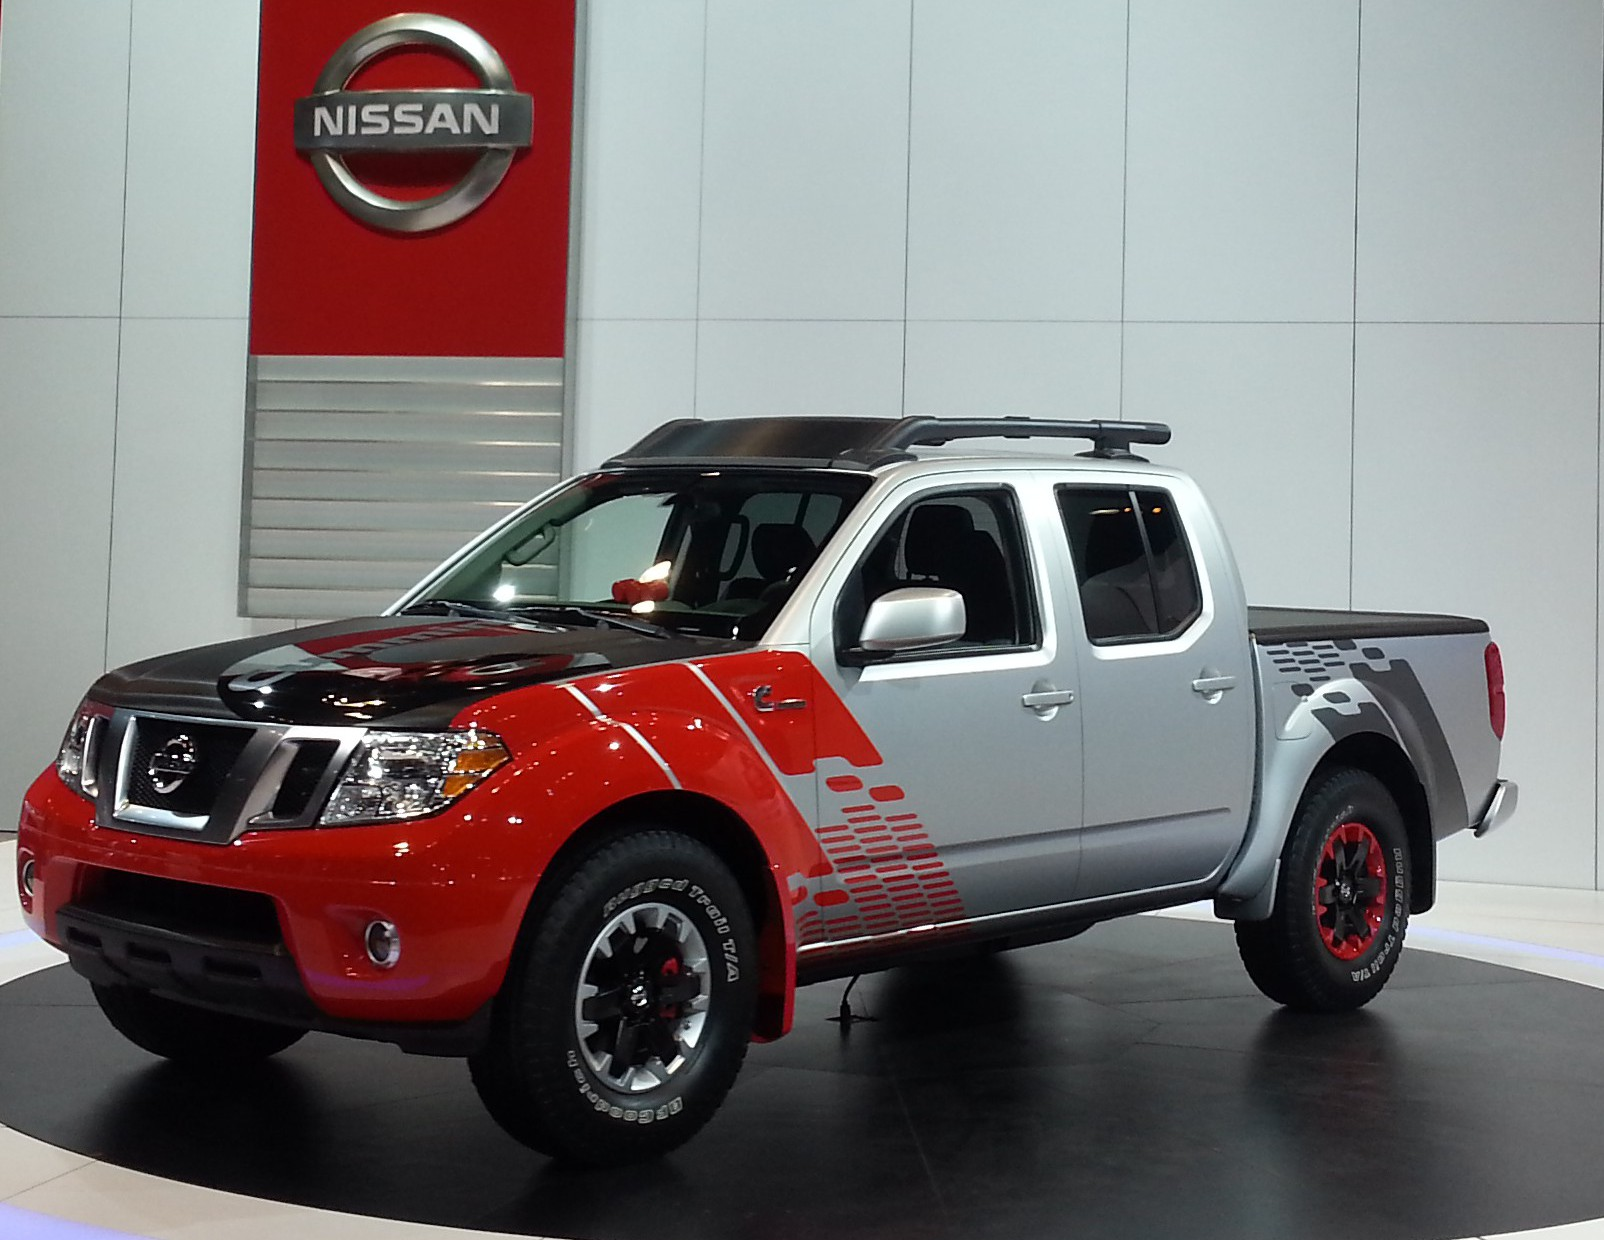 Nissan Frontier Diesel >> Nissan Frontier Diesel Runner Concept The Daily Drive Consumer